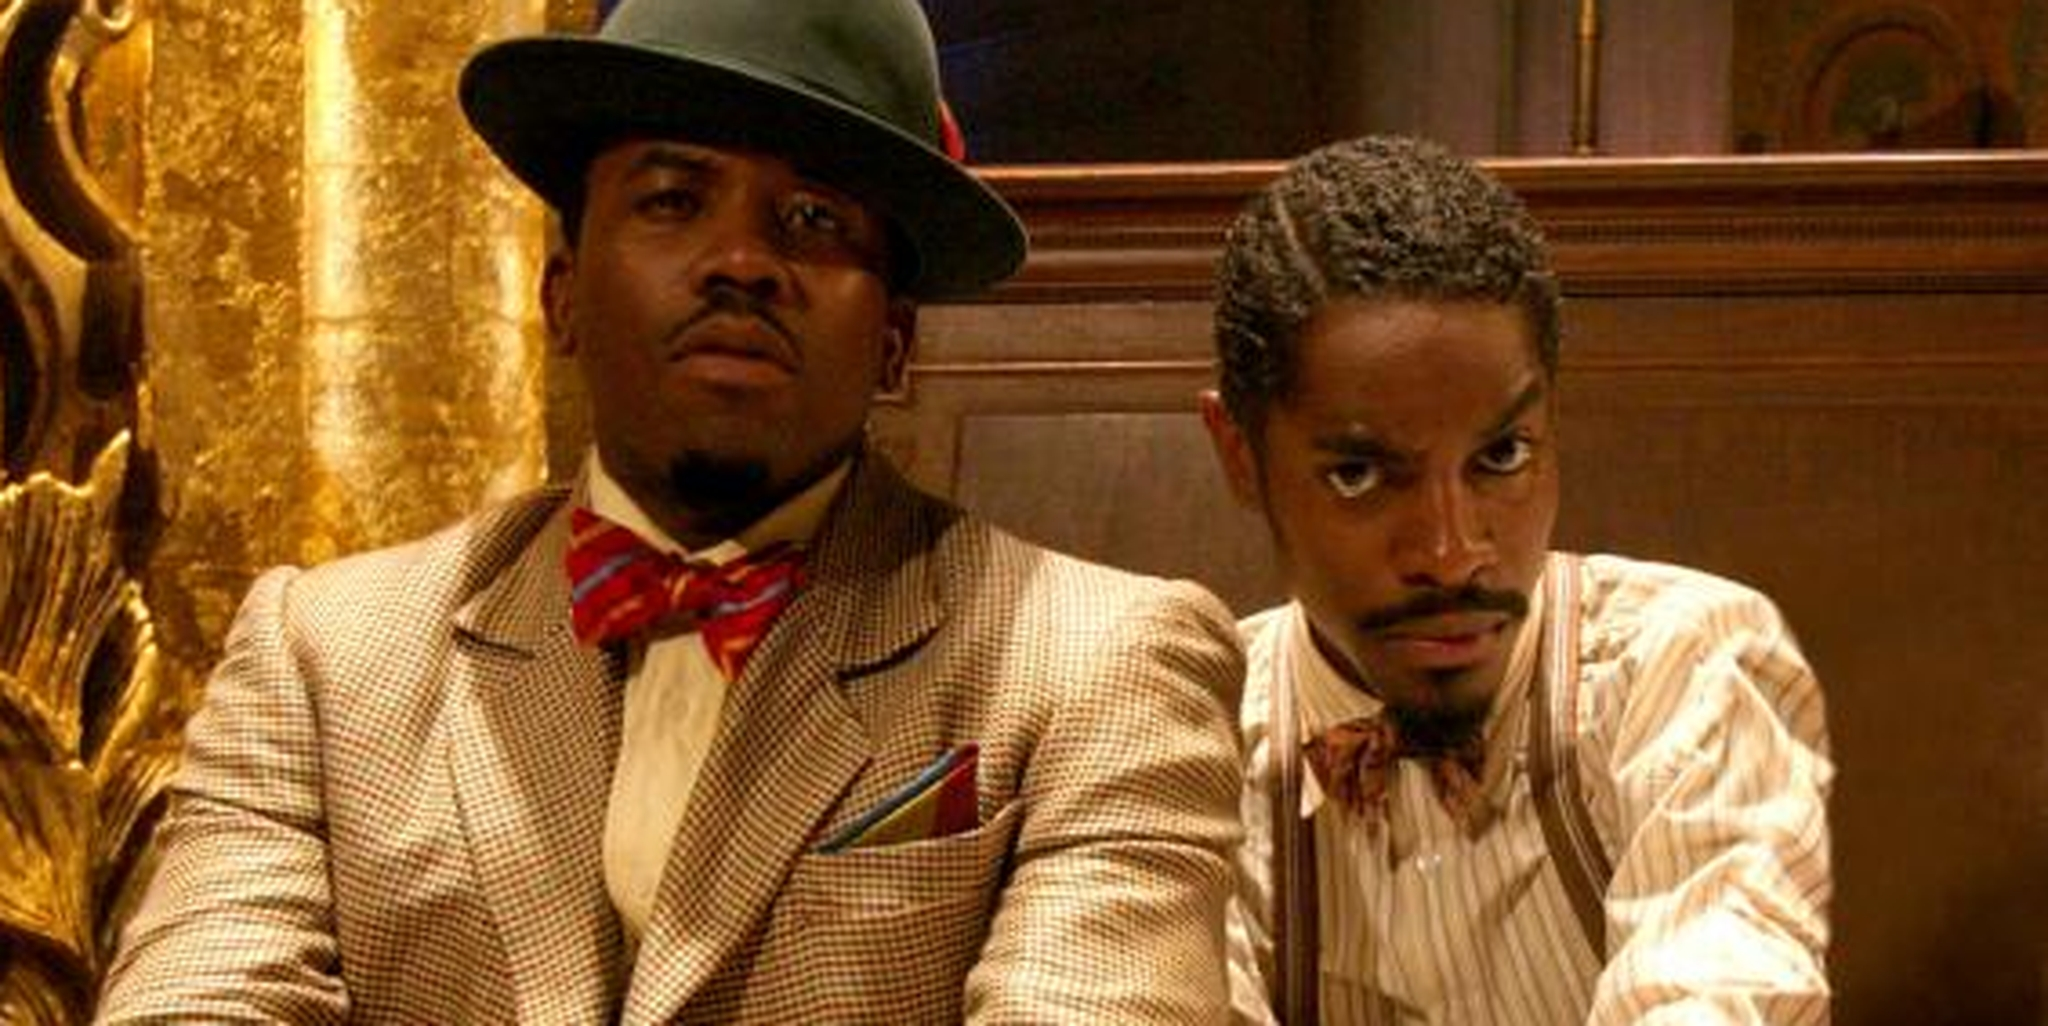 Official Photos | The Official Outkast Site